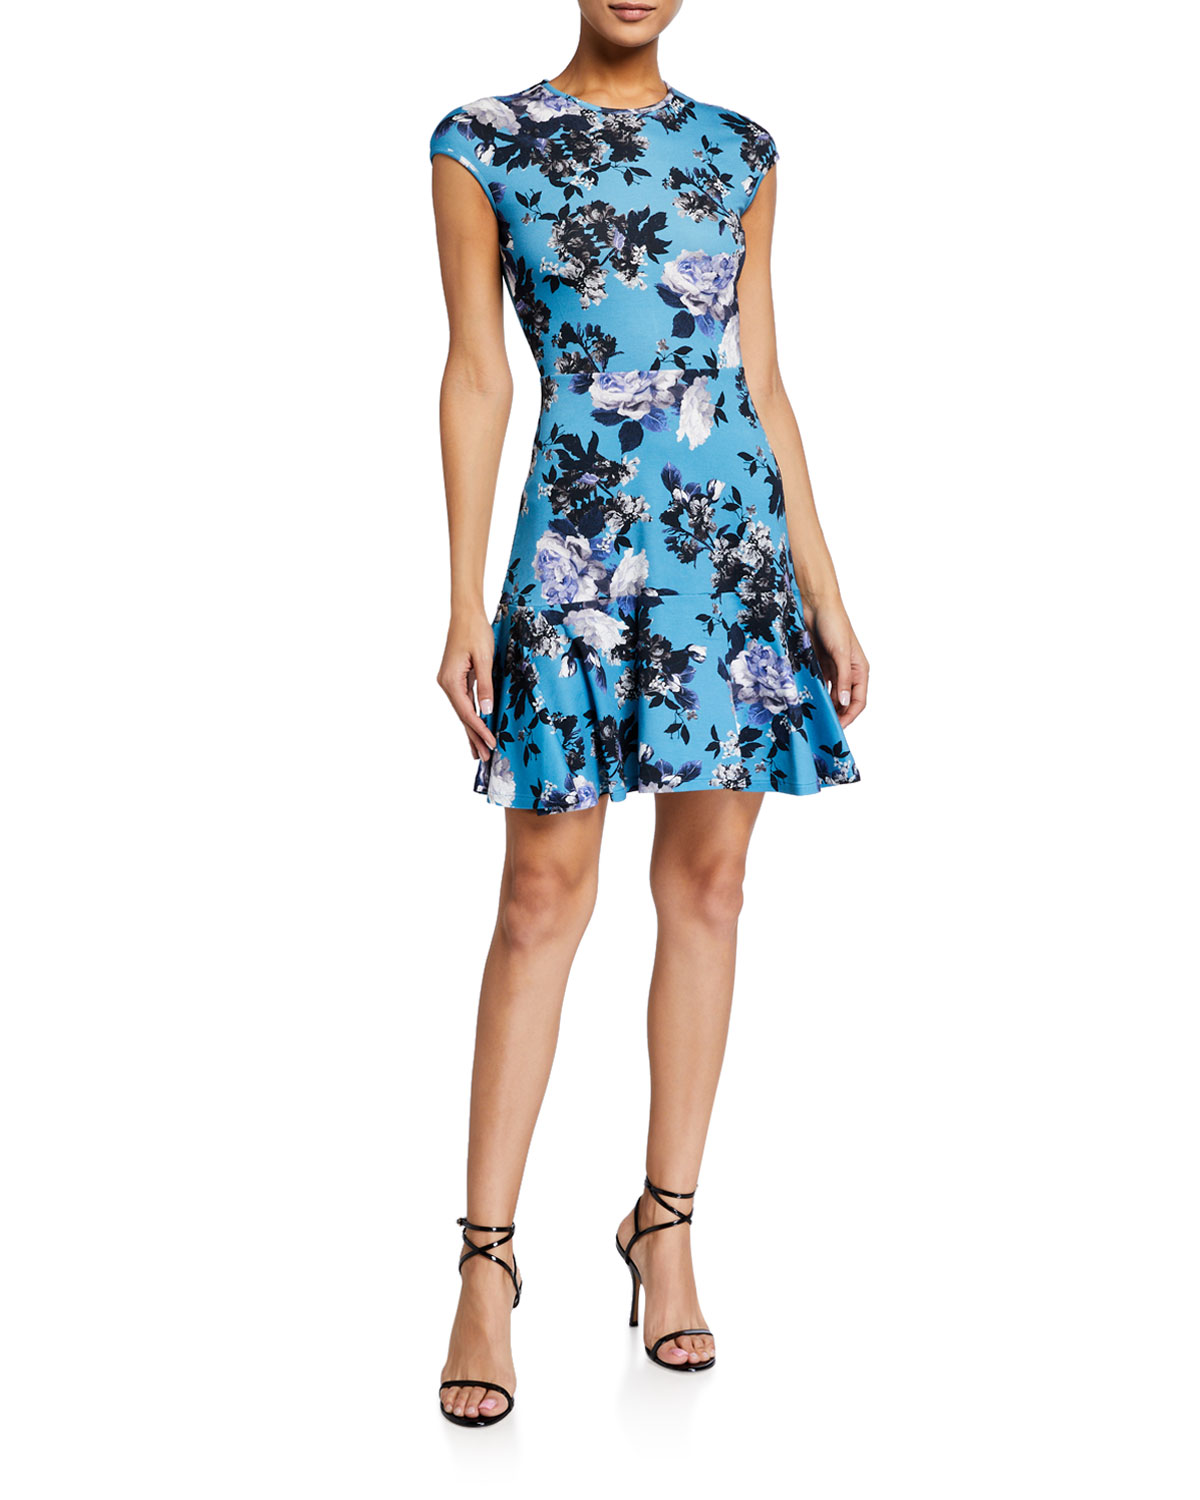 Erdem Darlina Cap-Sleeve Dress